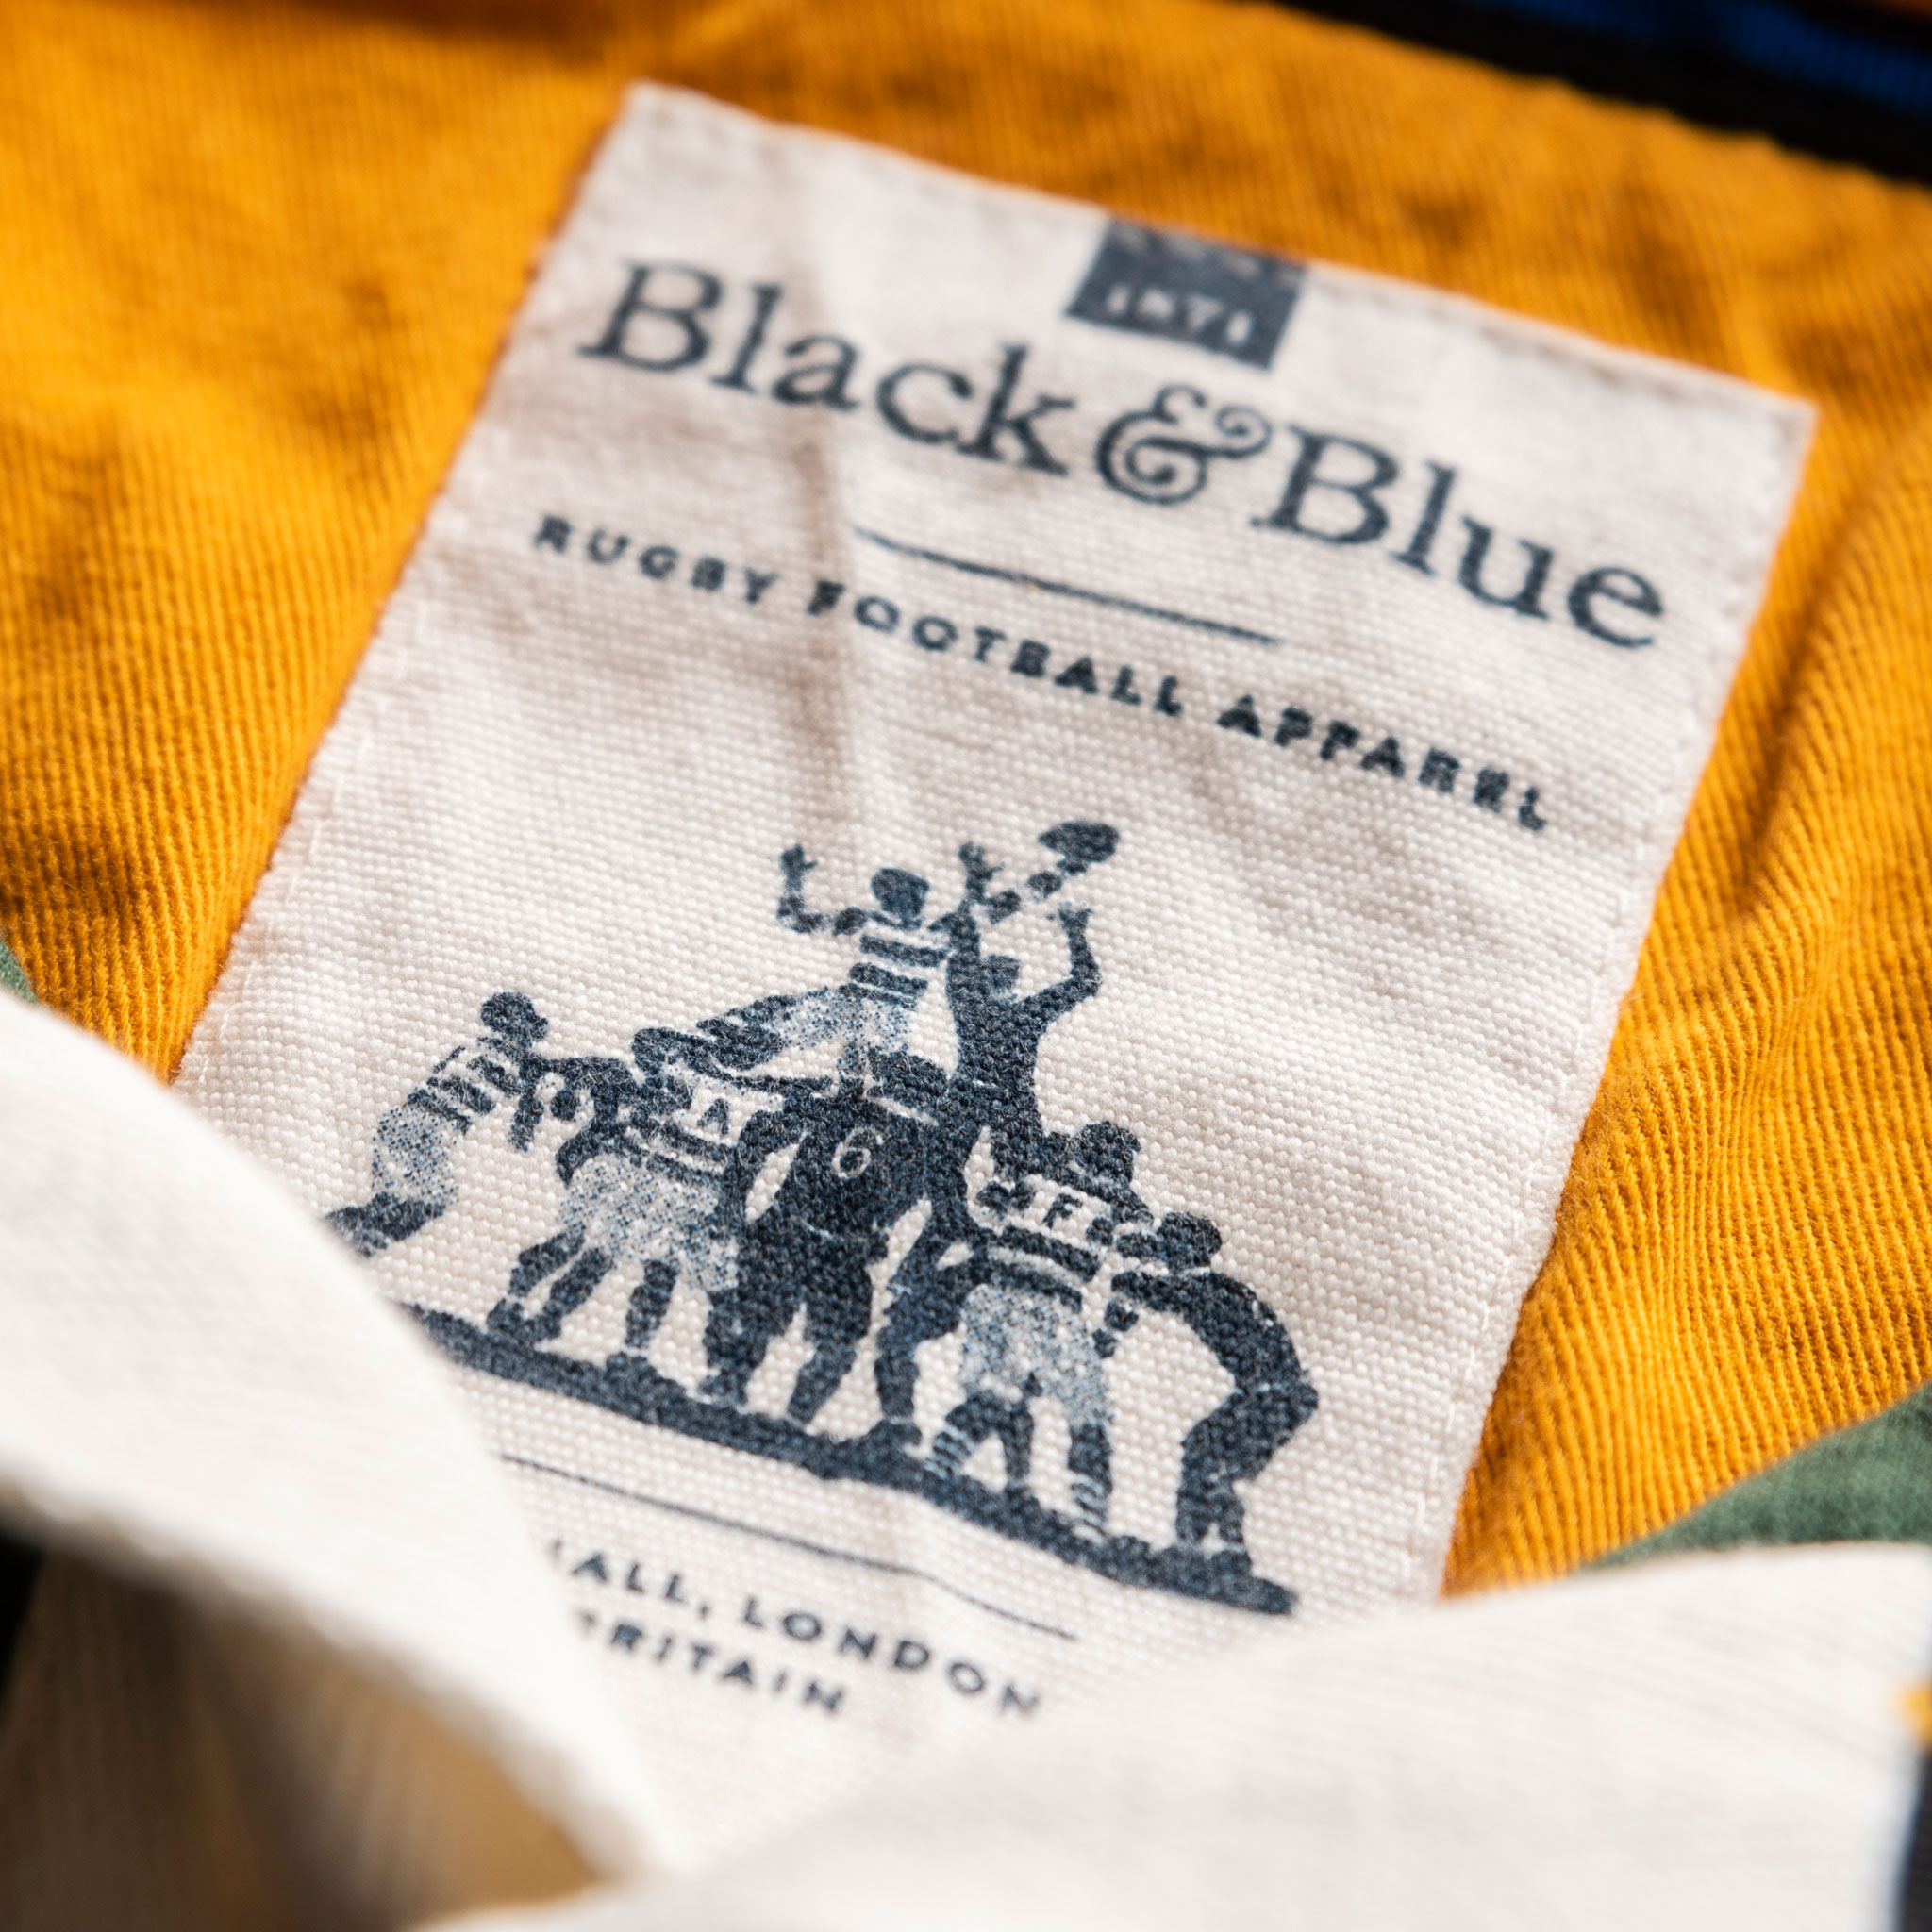 Classic Green with Yellow Collar 1871 Vintage Rugby Shirt_BB Label